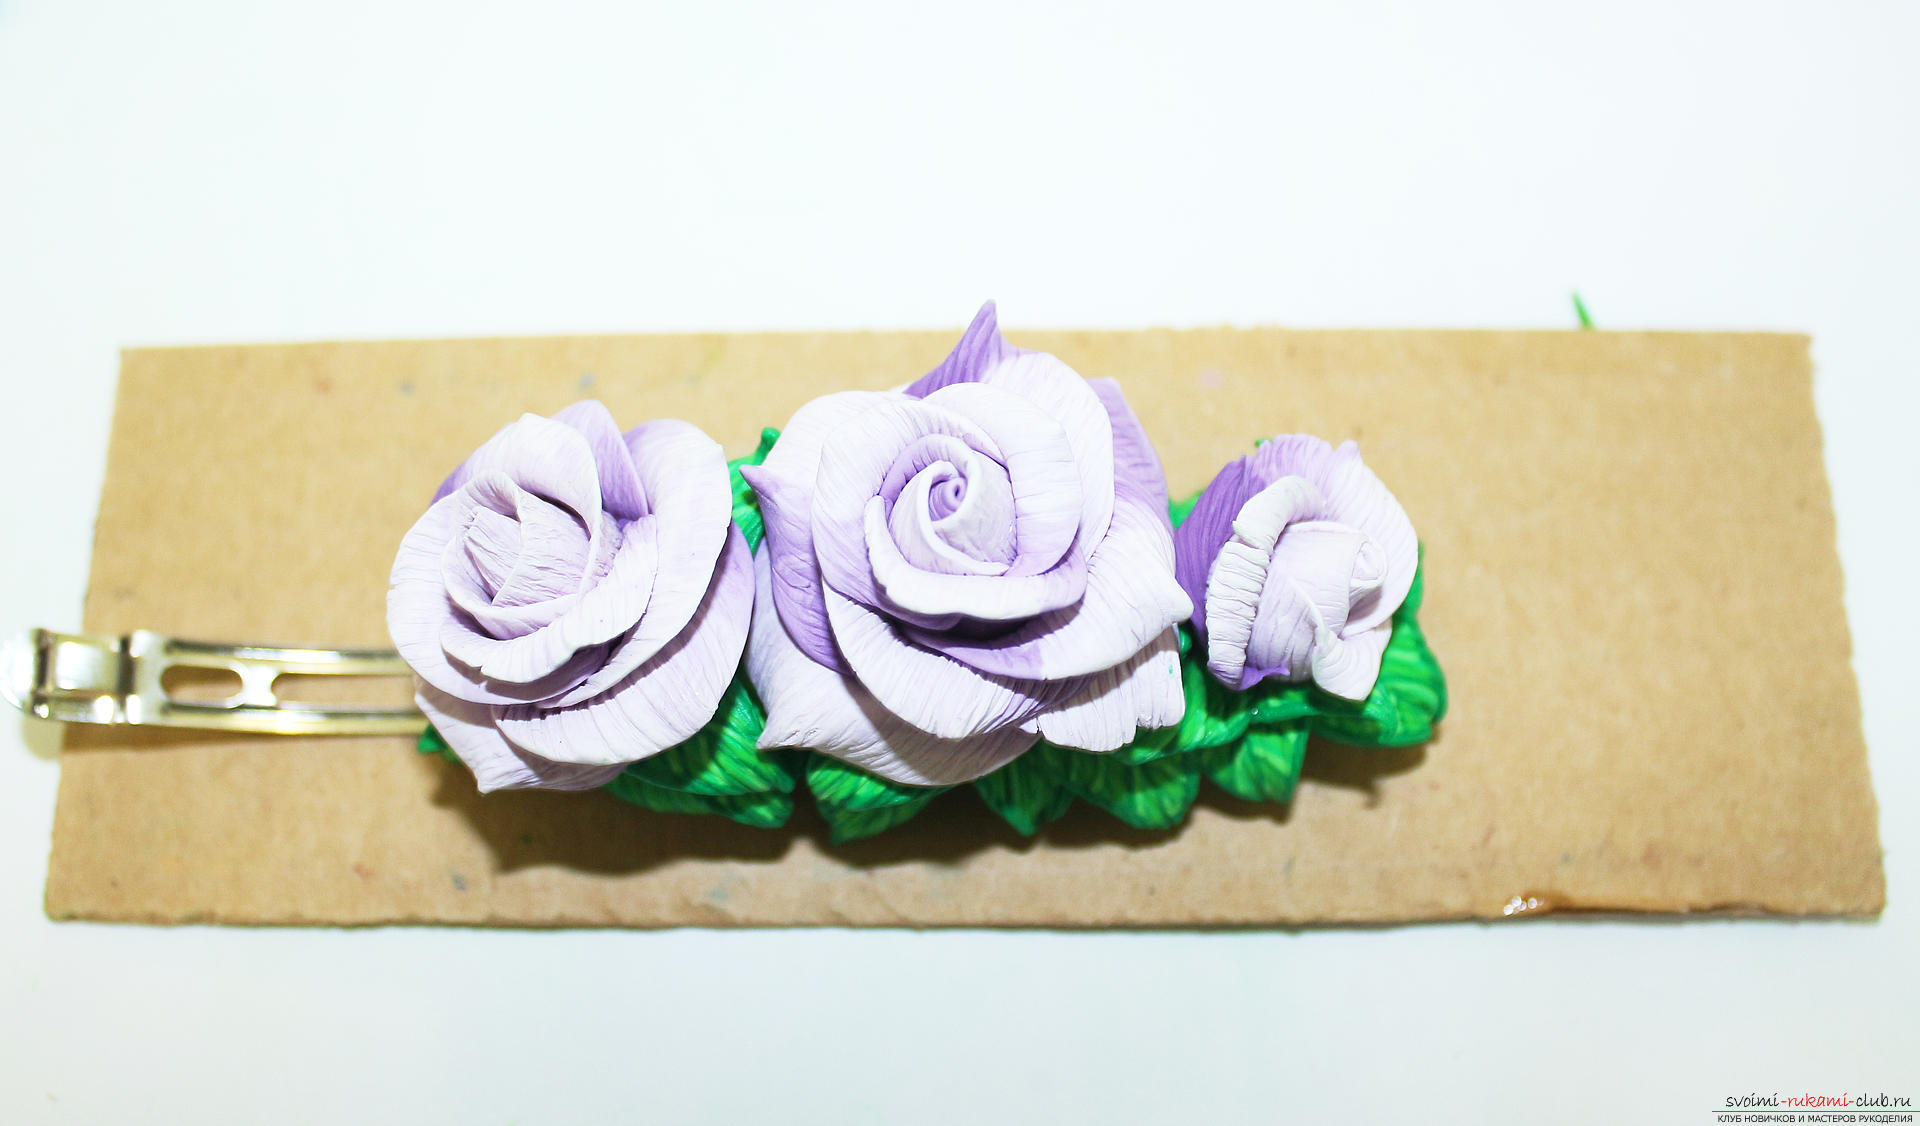 This master class with a photo and description will teach you how to make flowers - roses - from polymer clay in texturing technology .. Photo №81